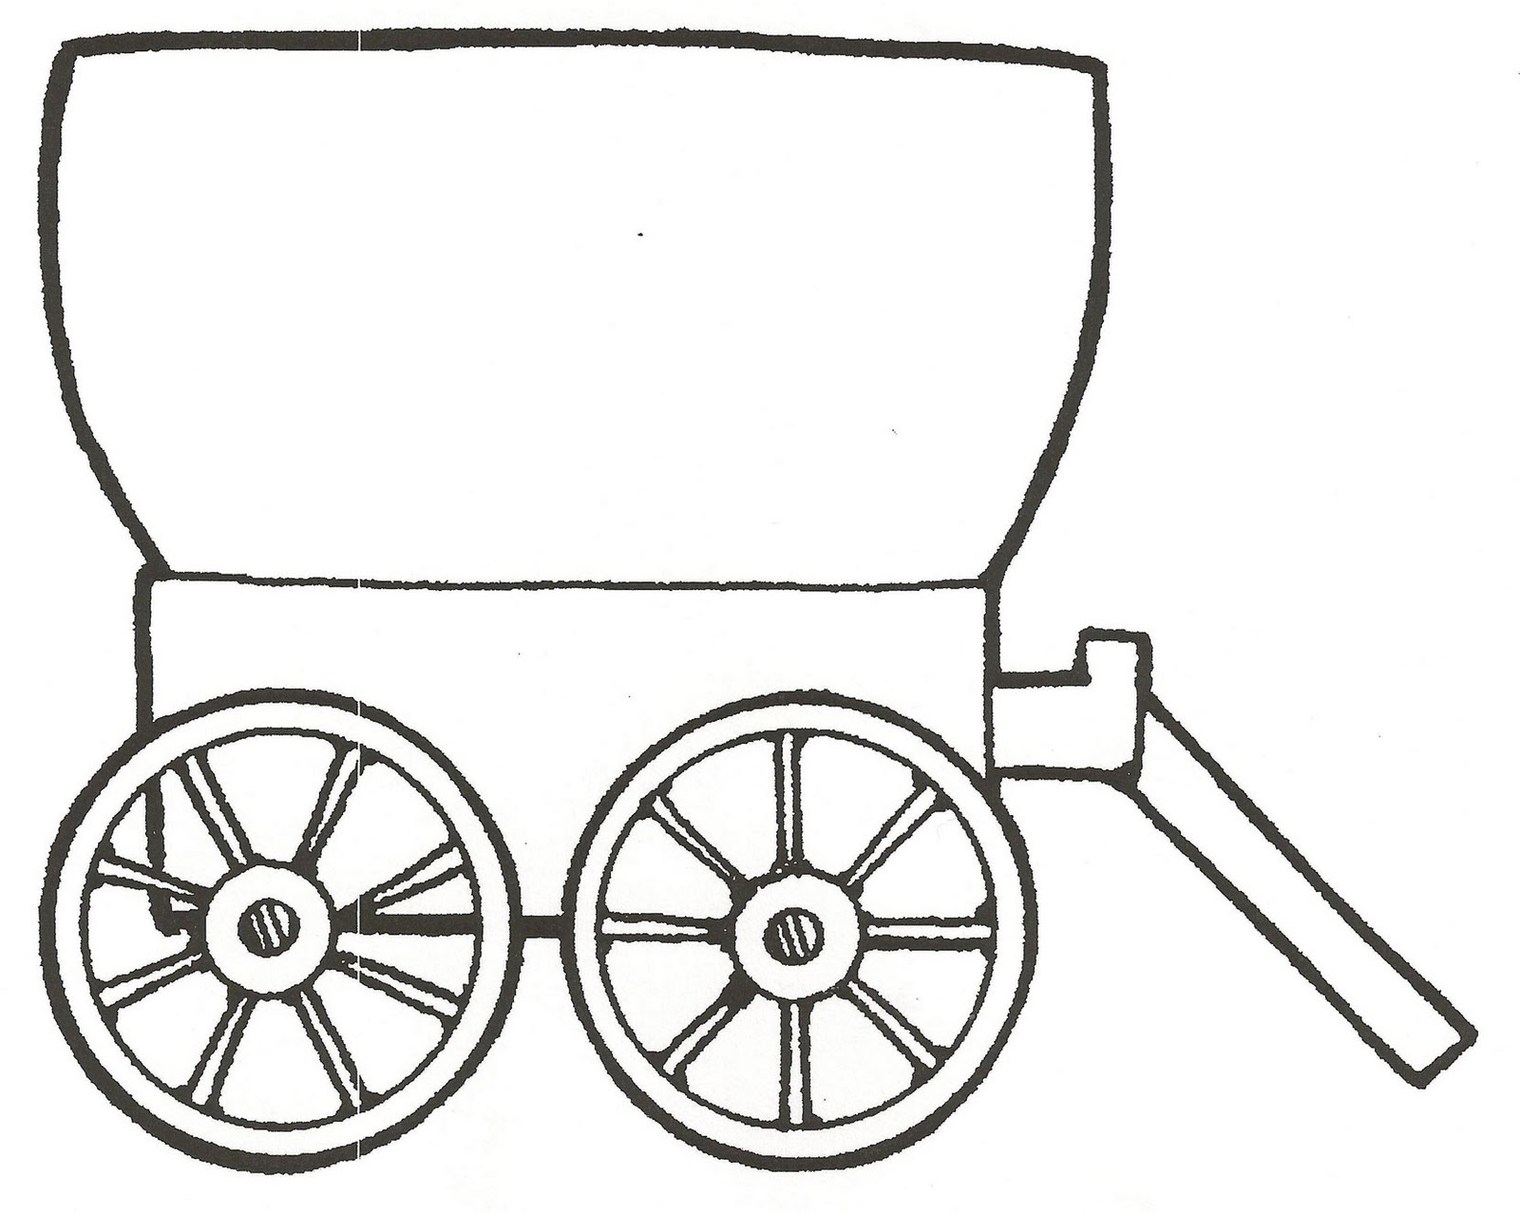 Covered Wagon Clipart; Wagon Clip Art Clipart - Free to use Clip Art Resource .